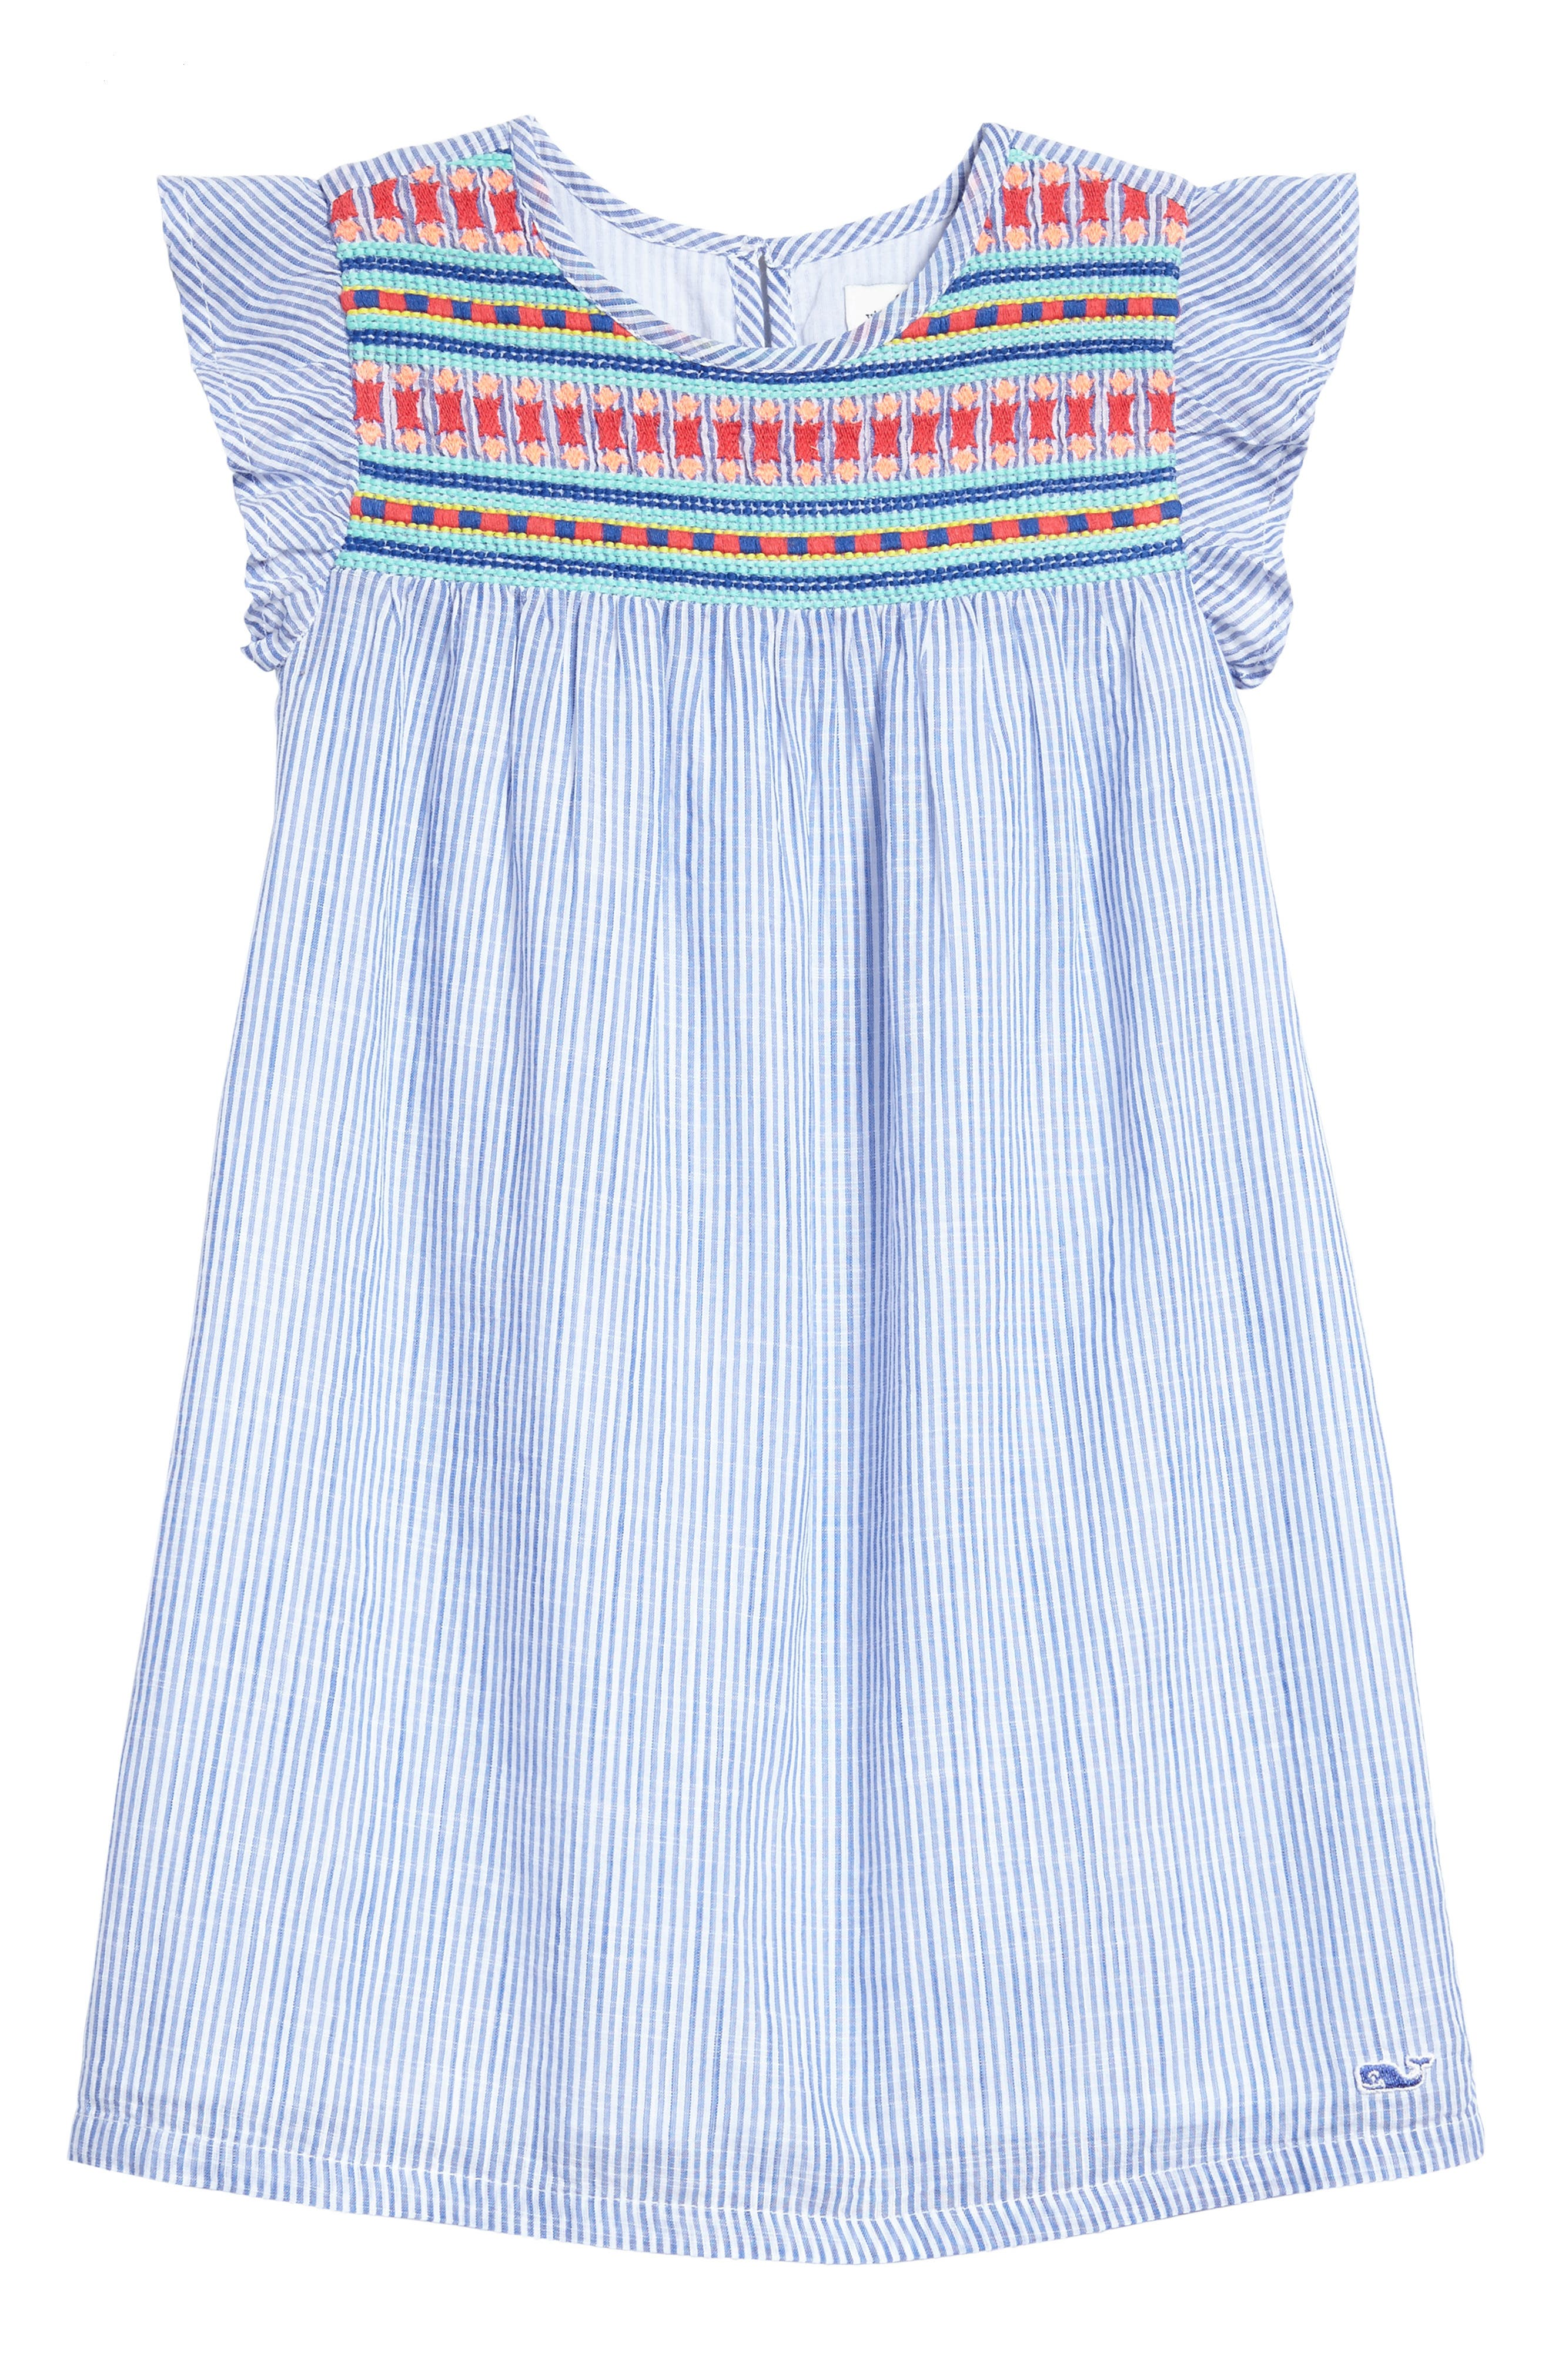 Embroidered Flutter Dress,                         Main,                         color, White Cap